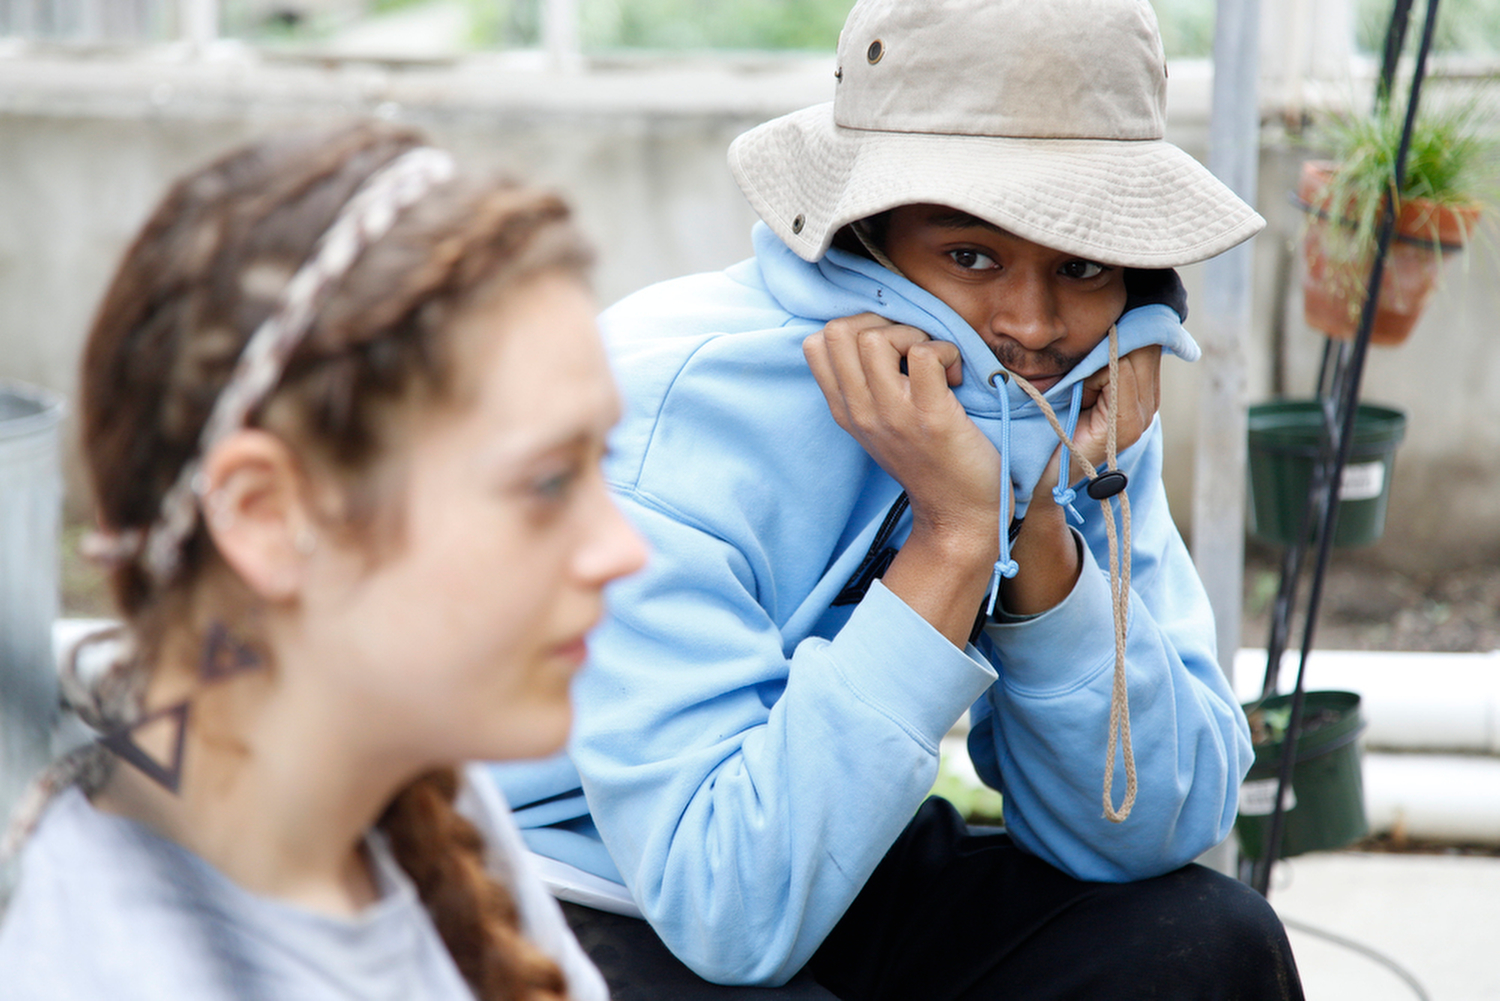 Jarvis DuVal, 18, listens to Rachel Farley, 25, while she shares during the afternoon check-in at the Seedfolk City Farm, Rochester, N.Y., June 8, 2015.